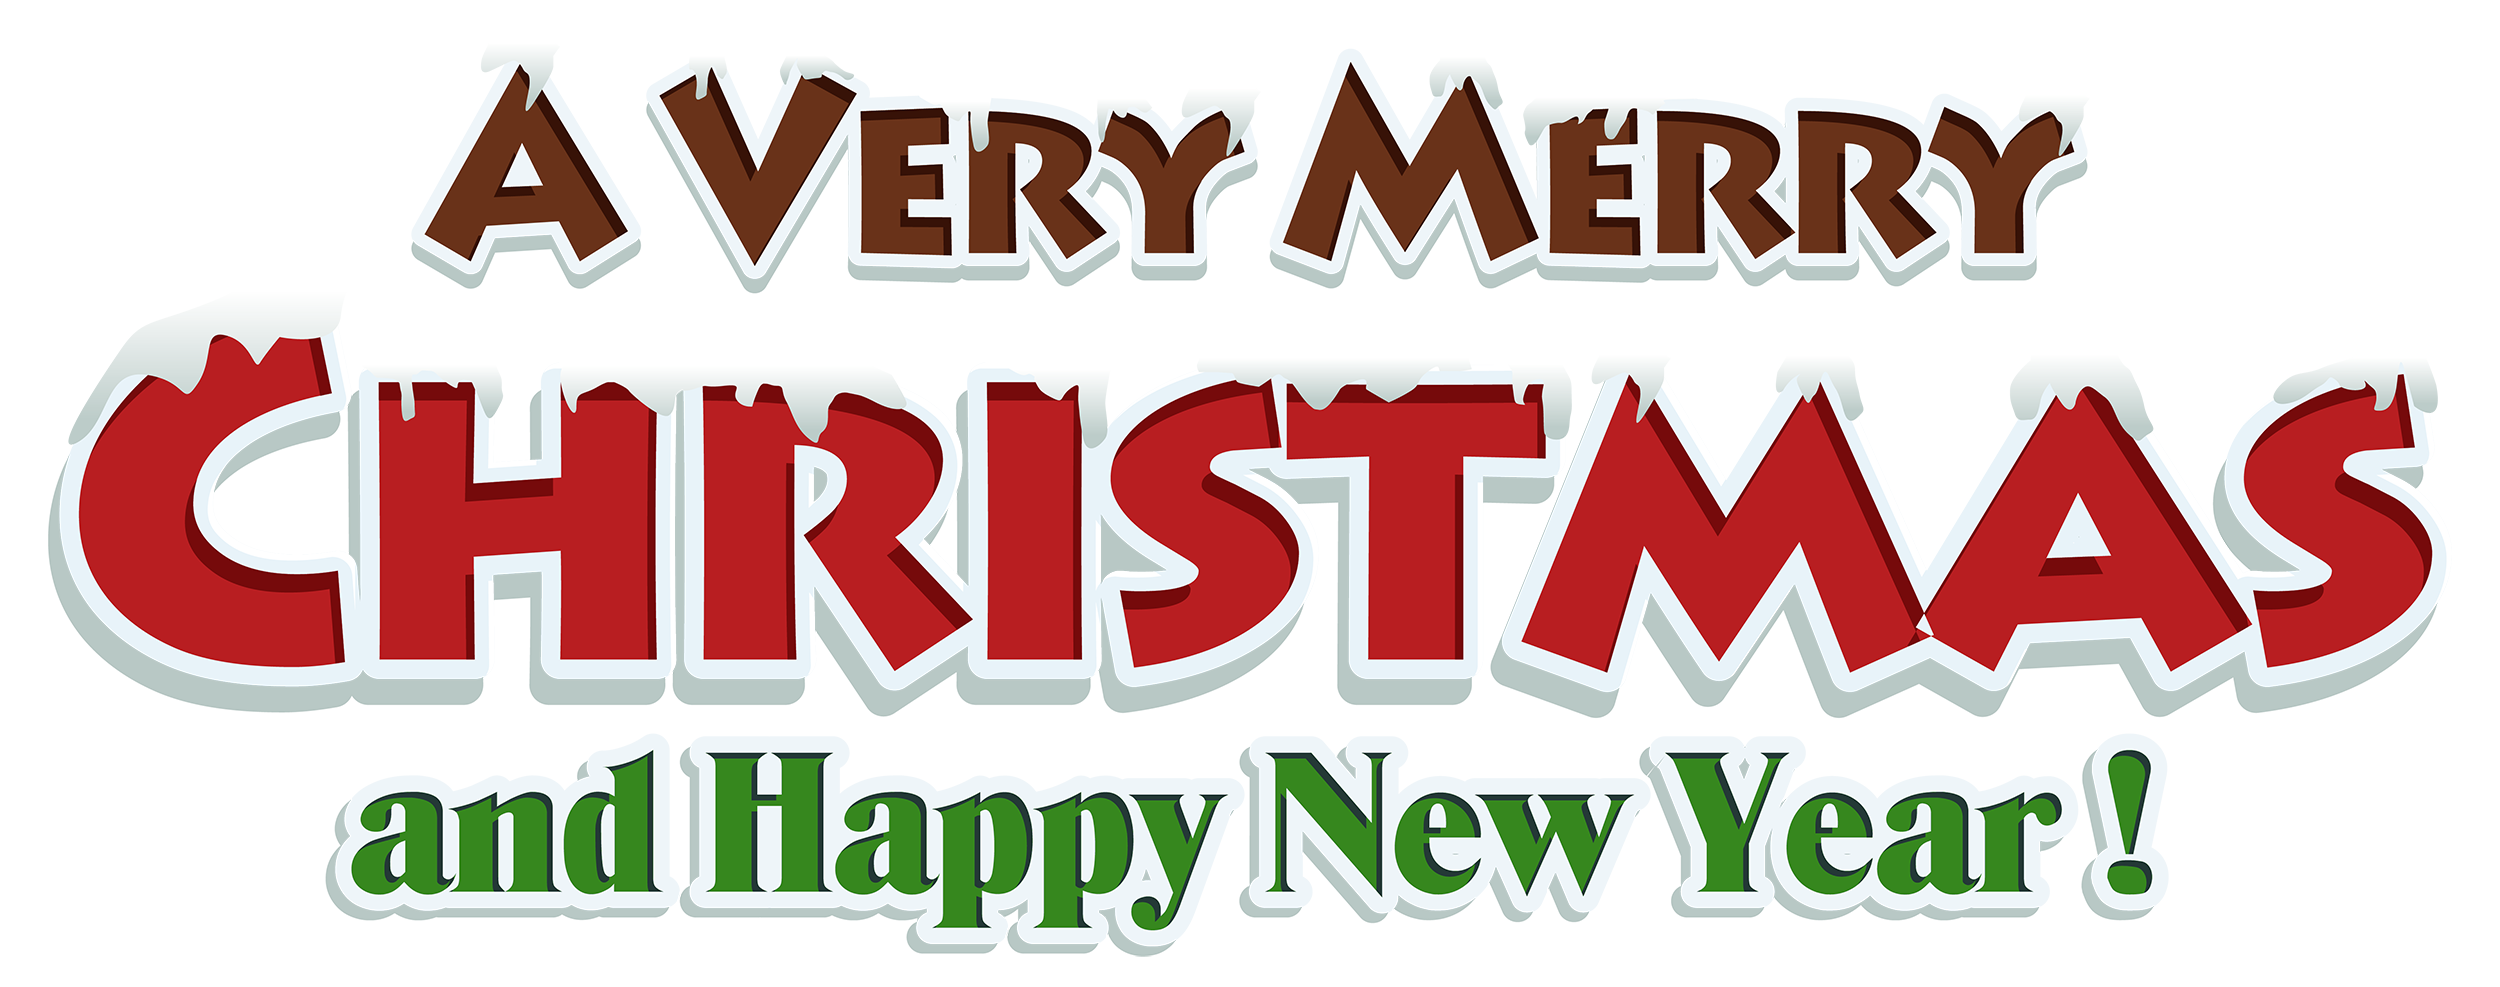 Merry christmas red text. Mouth clipart tasting